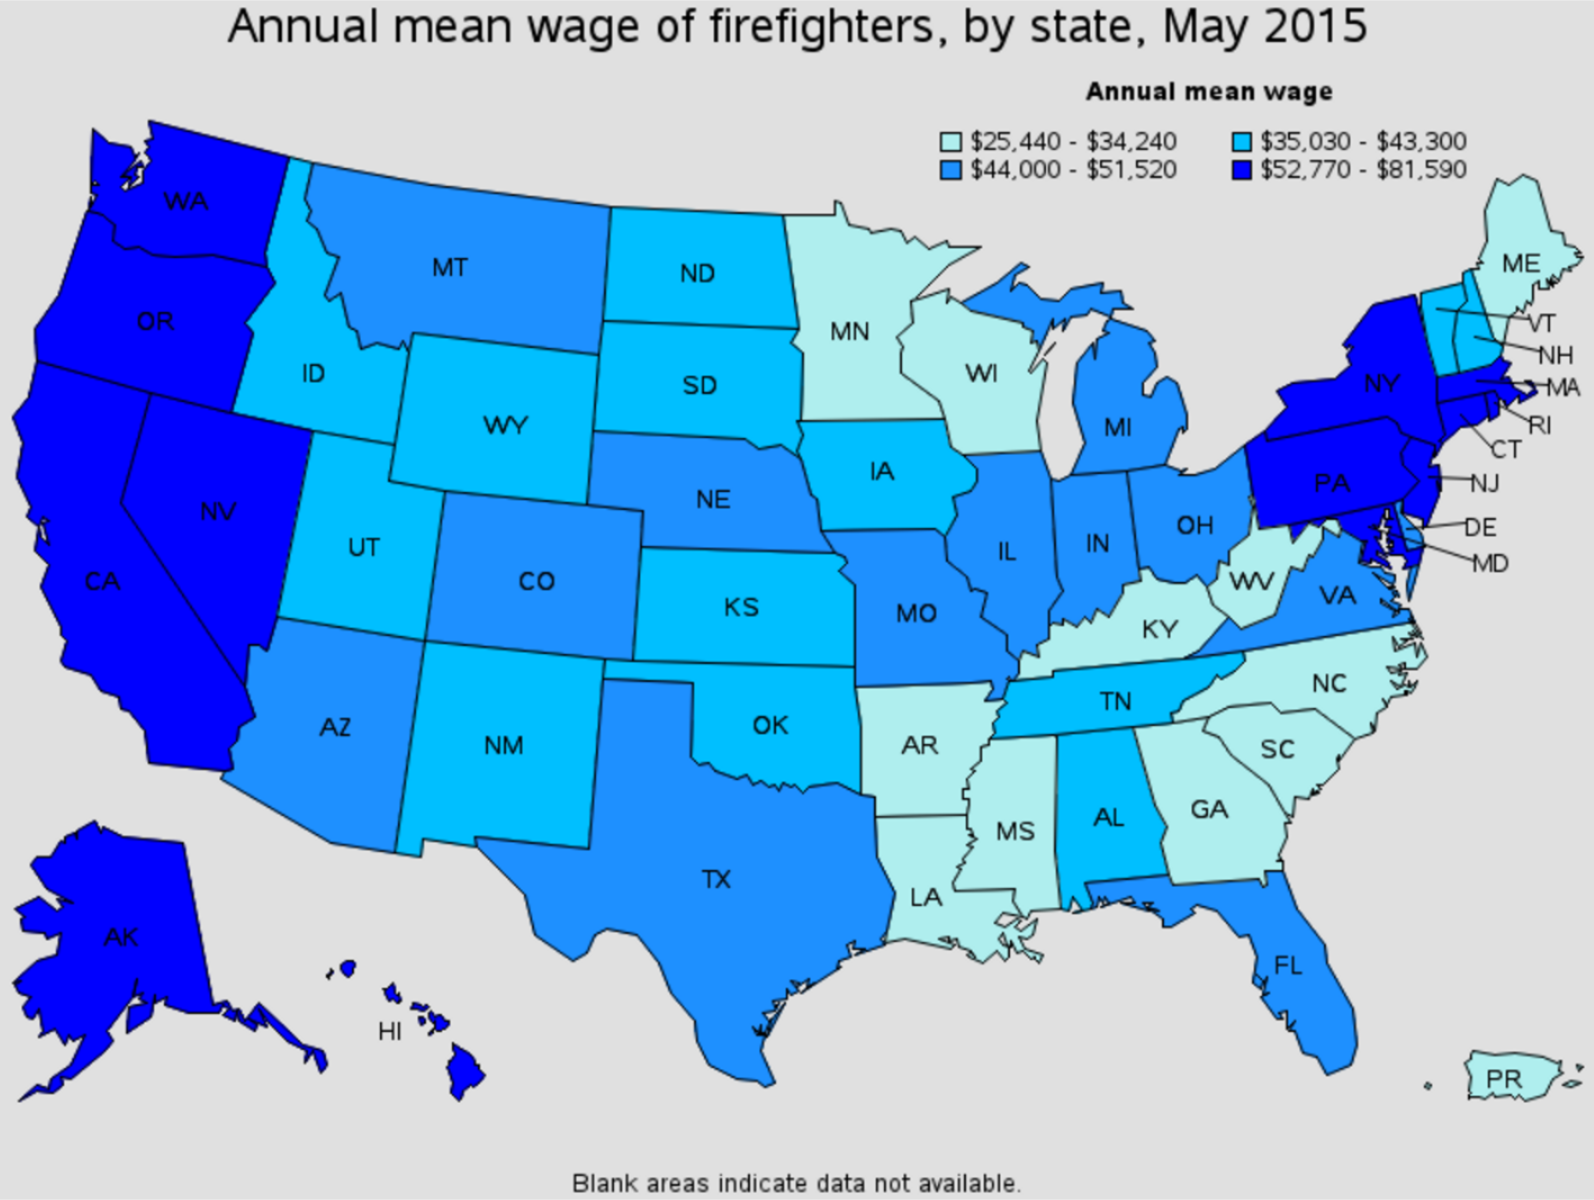 firefighter average salary by state Weiner Arkansas